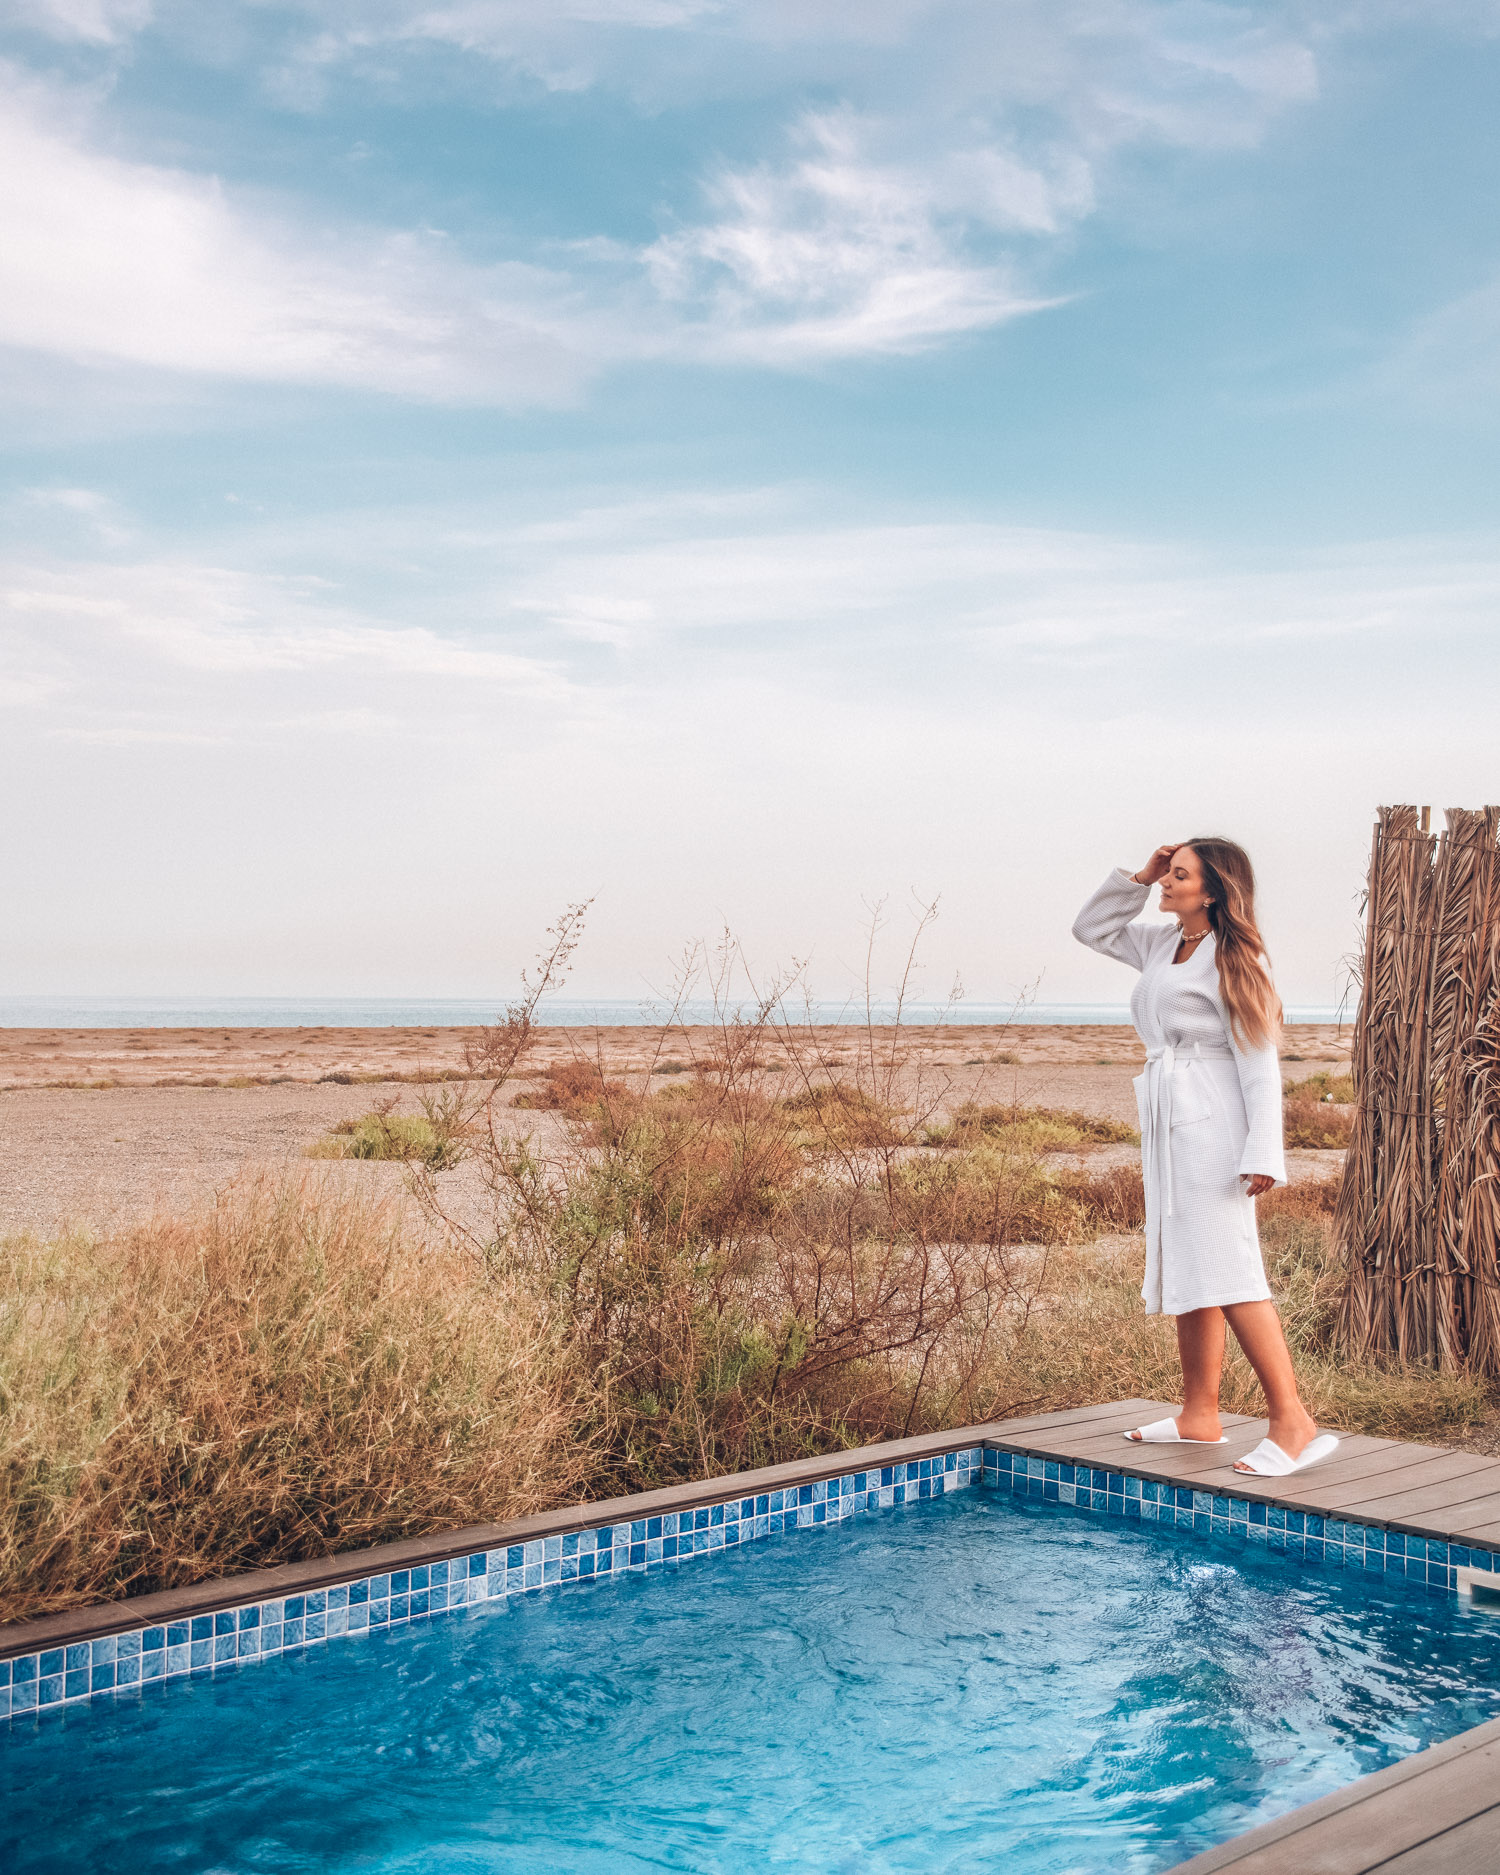 Woman in white bathrobe standing by private pool at Kingfisher Lodge, Sharjah